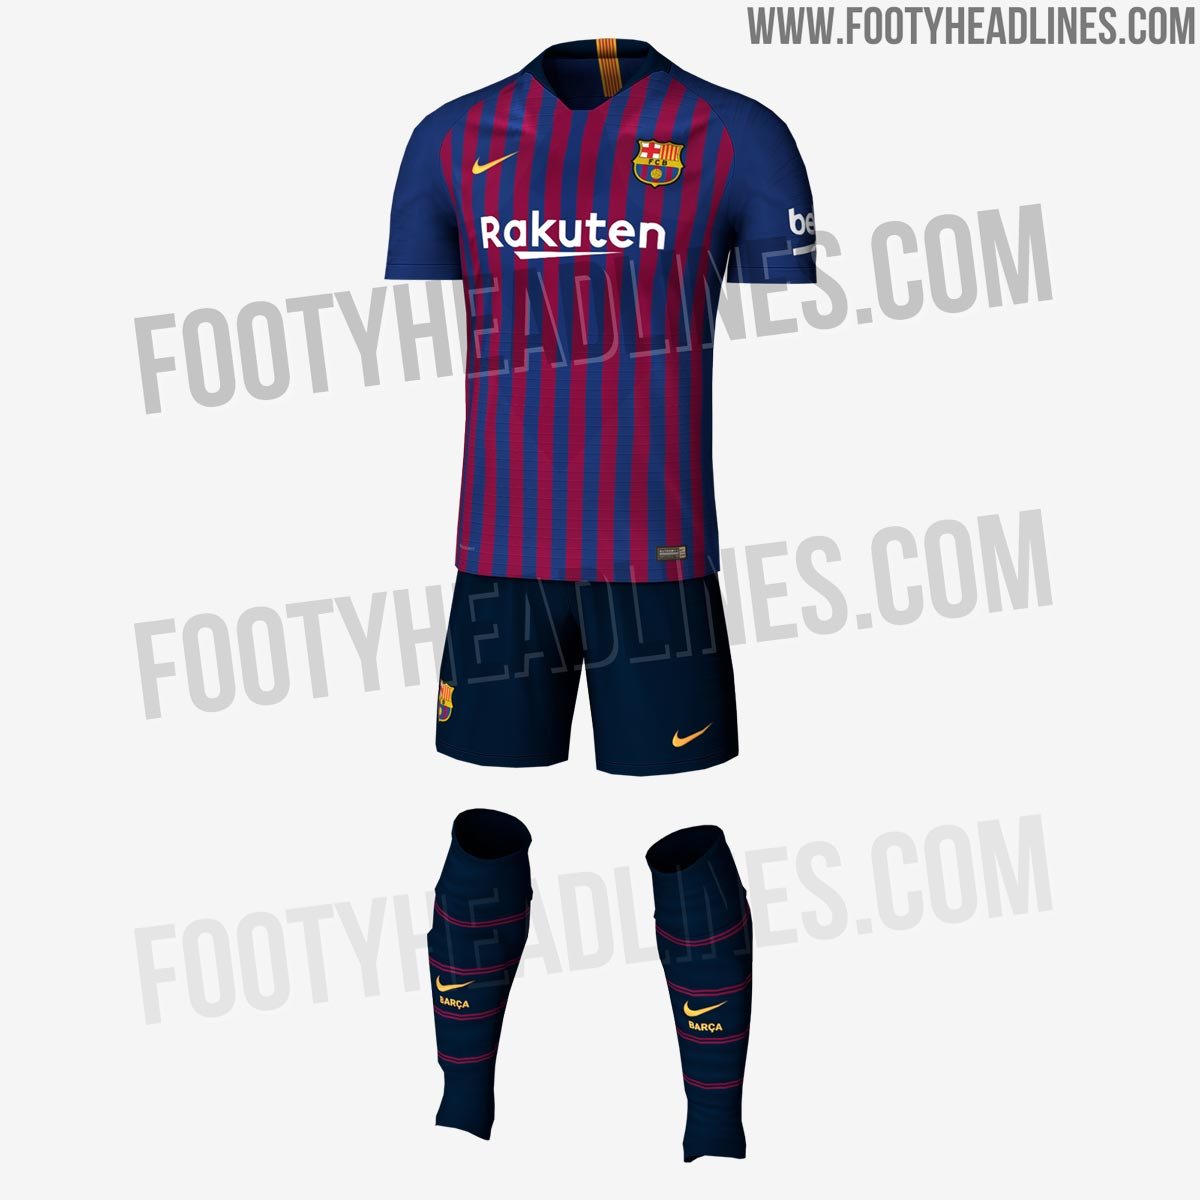 exclusive fc barcelona 18 19 home kit leaked footy headlines. Black Bedroom Furniture Sets. Home Design Ideas